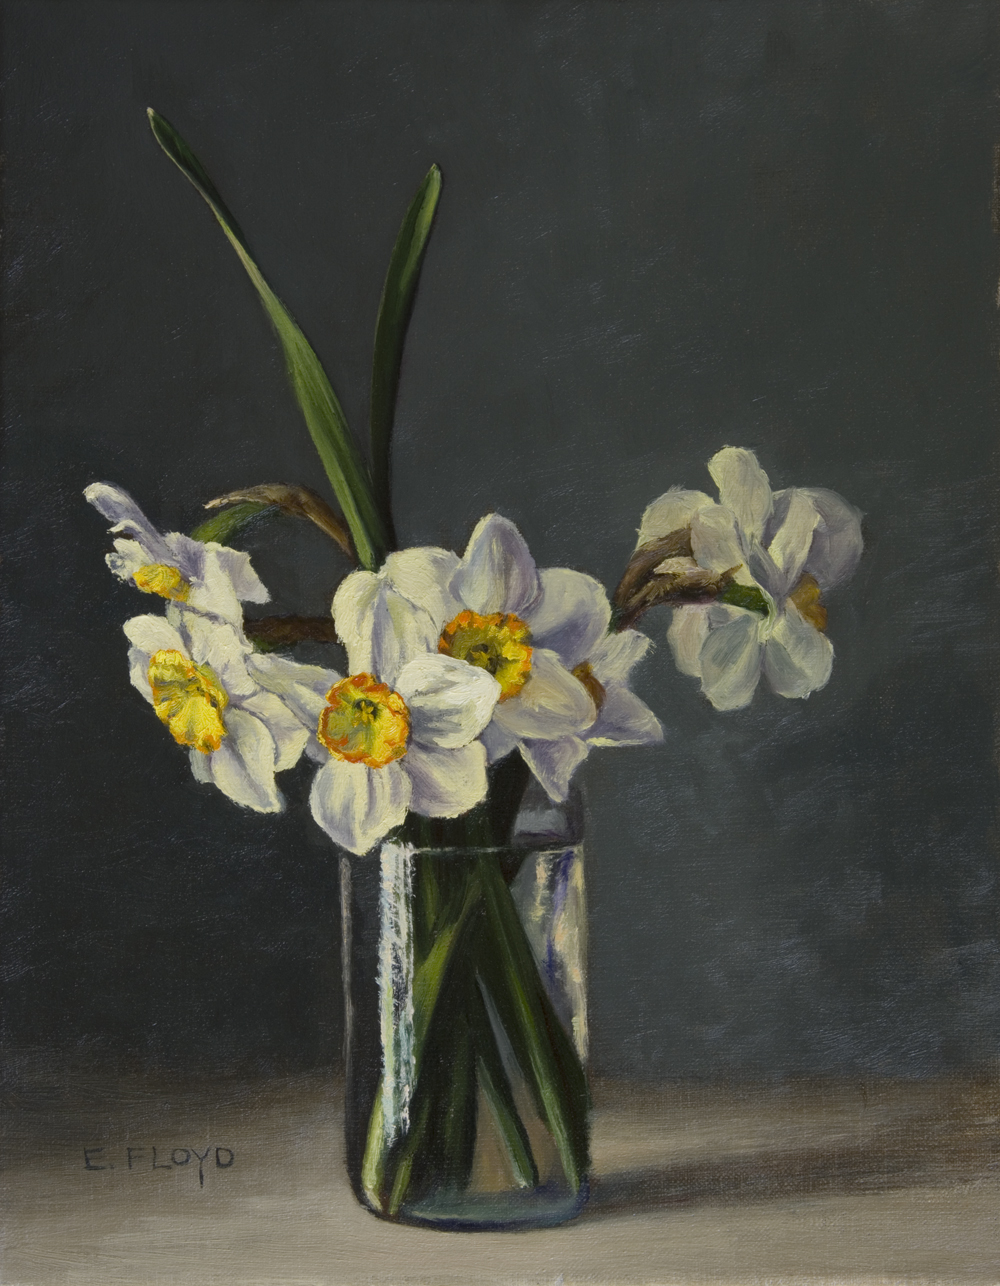 20170408-005-Ringtone-and-Flower-Record-Narcissus.jpg